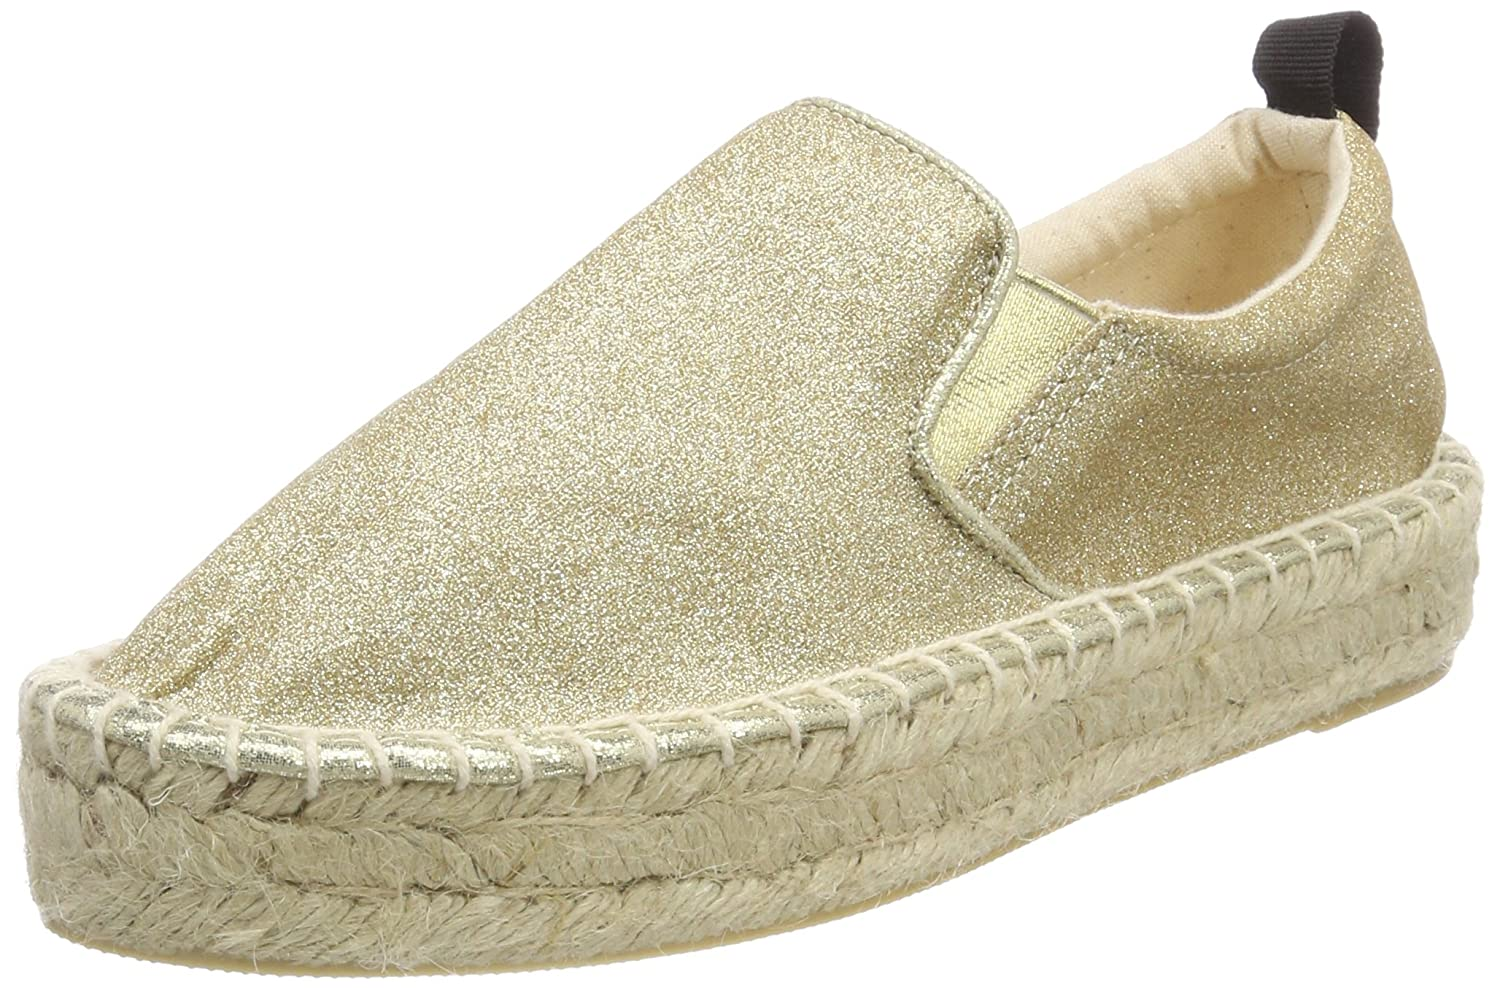 Colours of California Espadrille Double Sole in Microglitter, Espadrillas DonnaOro (Gold)